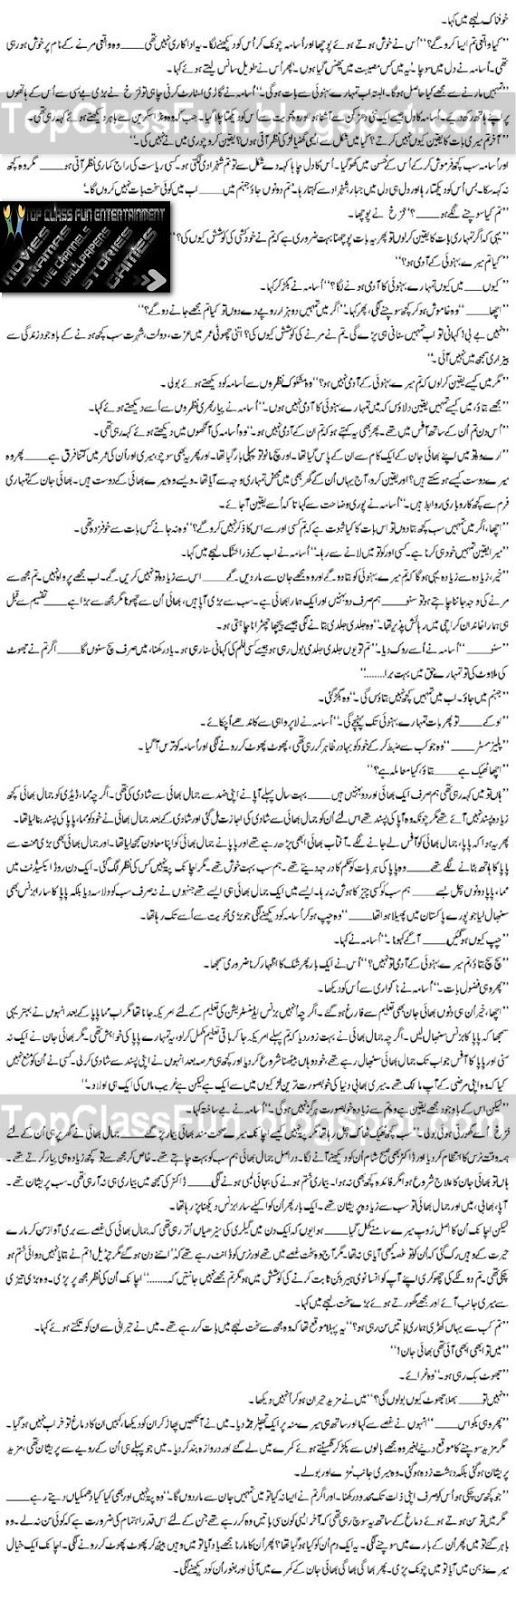 Romantic Urdu Novel - MOHABBAT – By Shahina Chanda Mehtab Page 6